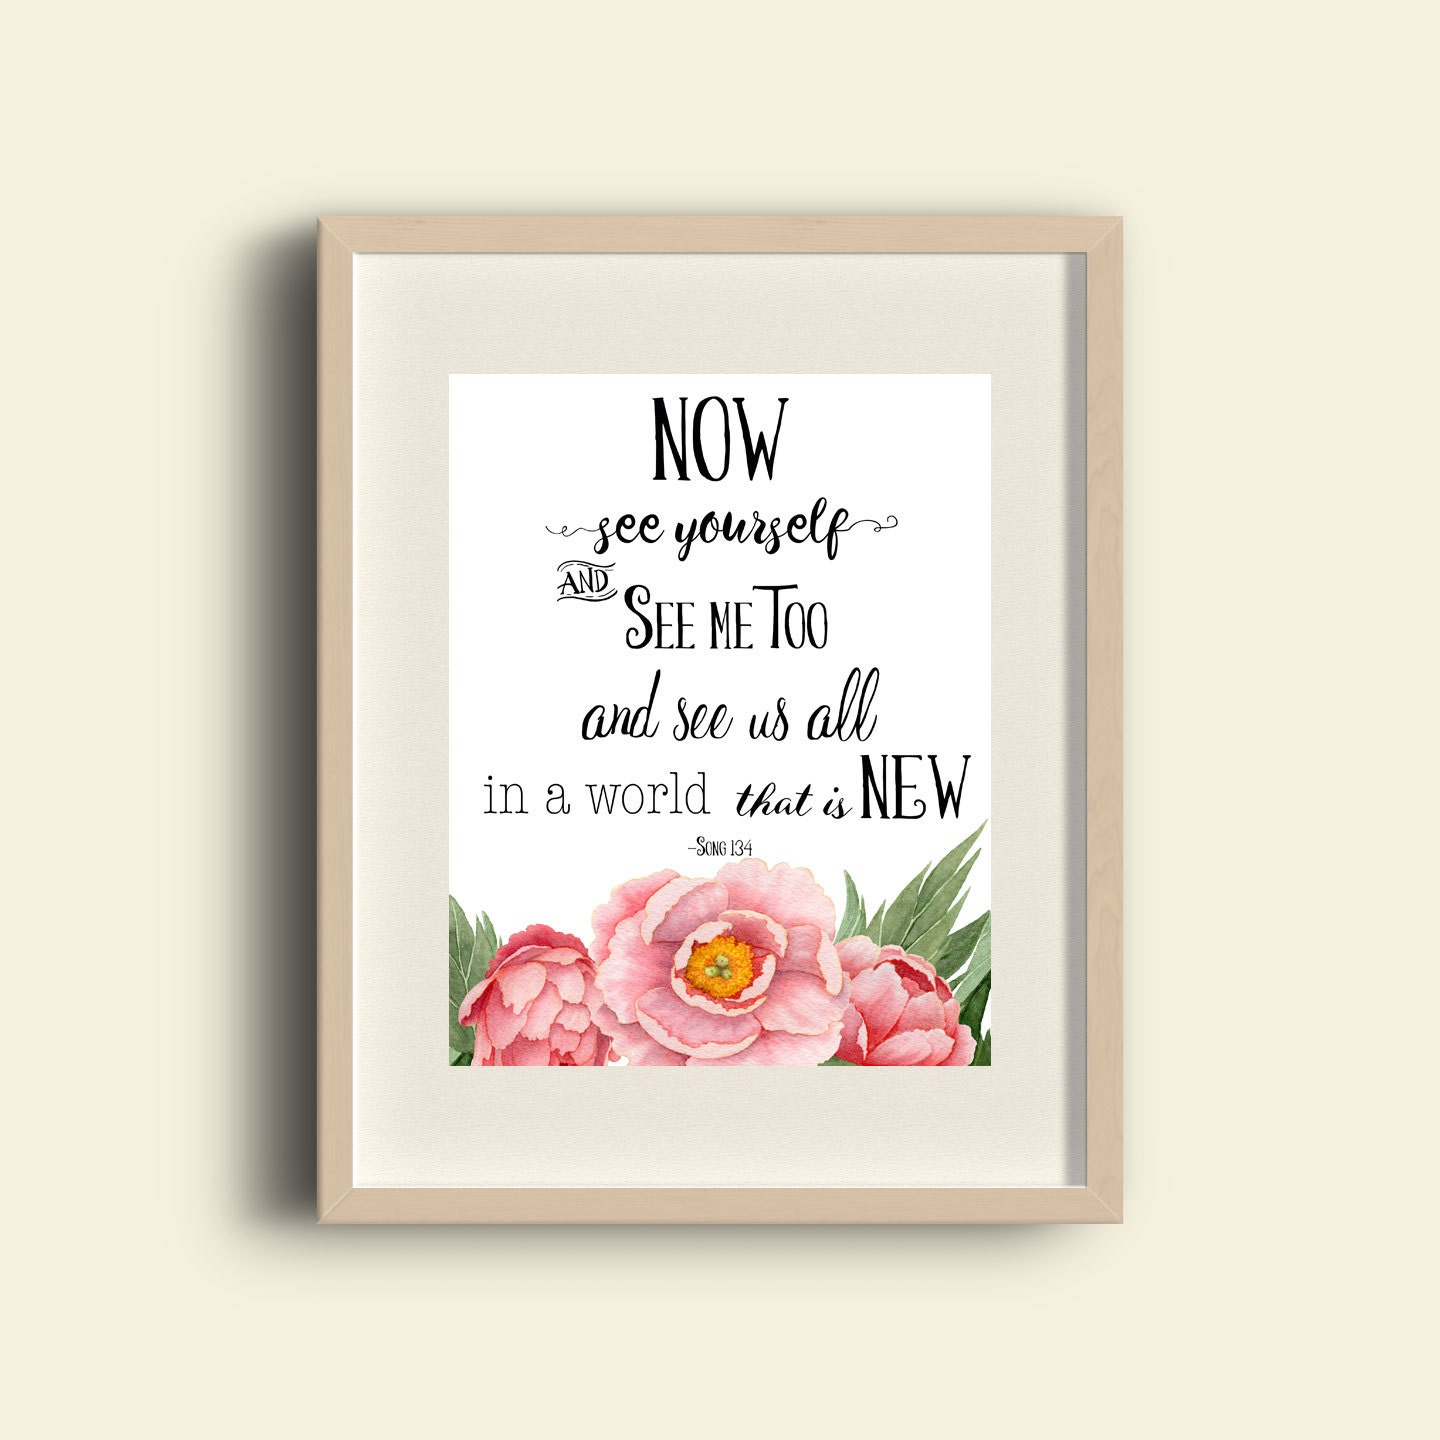 Jehovah Witness Greeting Cards Gallery Greetings Card Design Simple